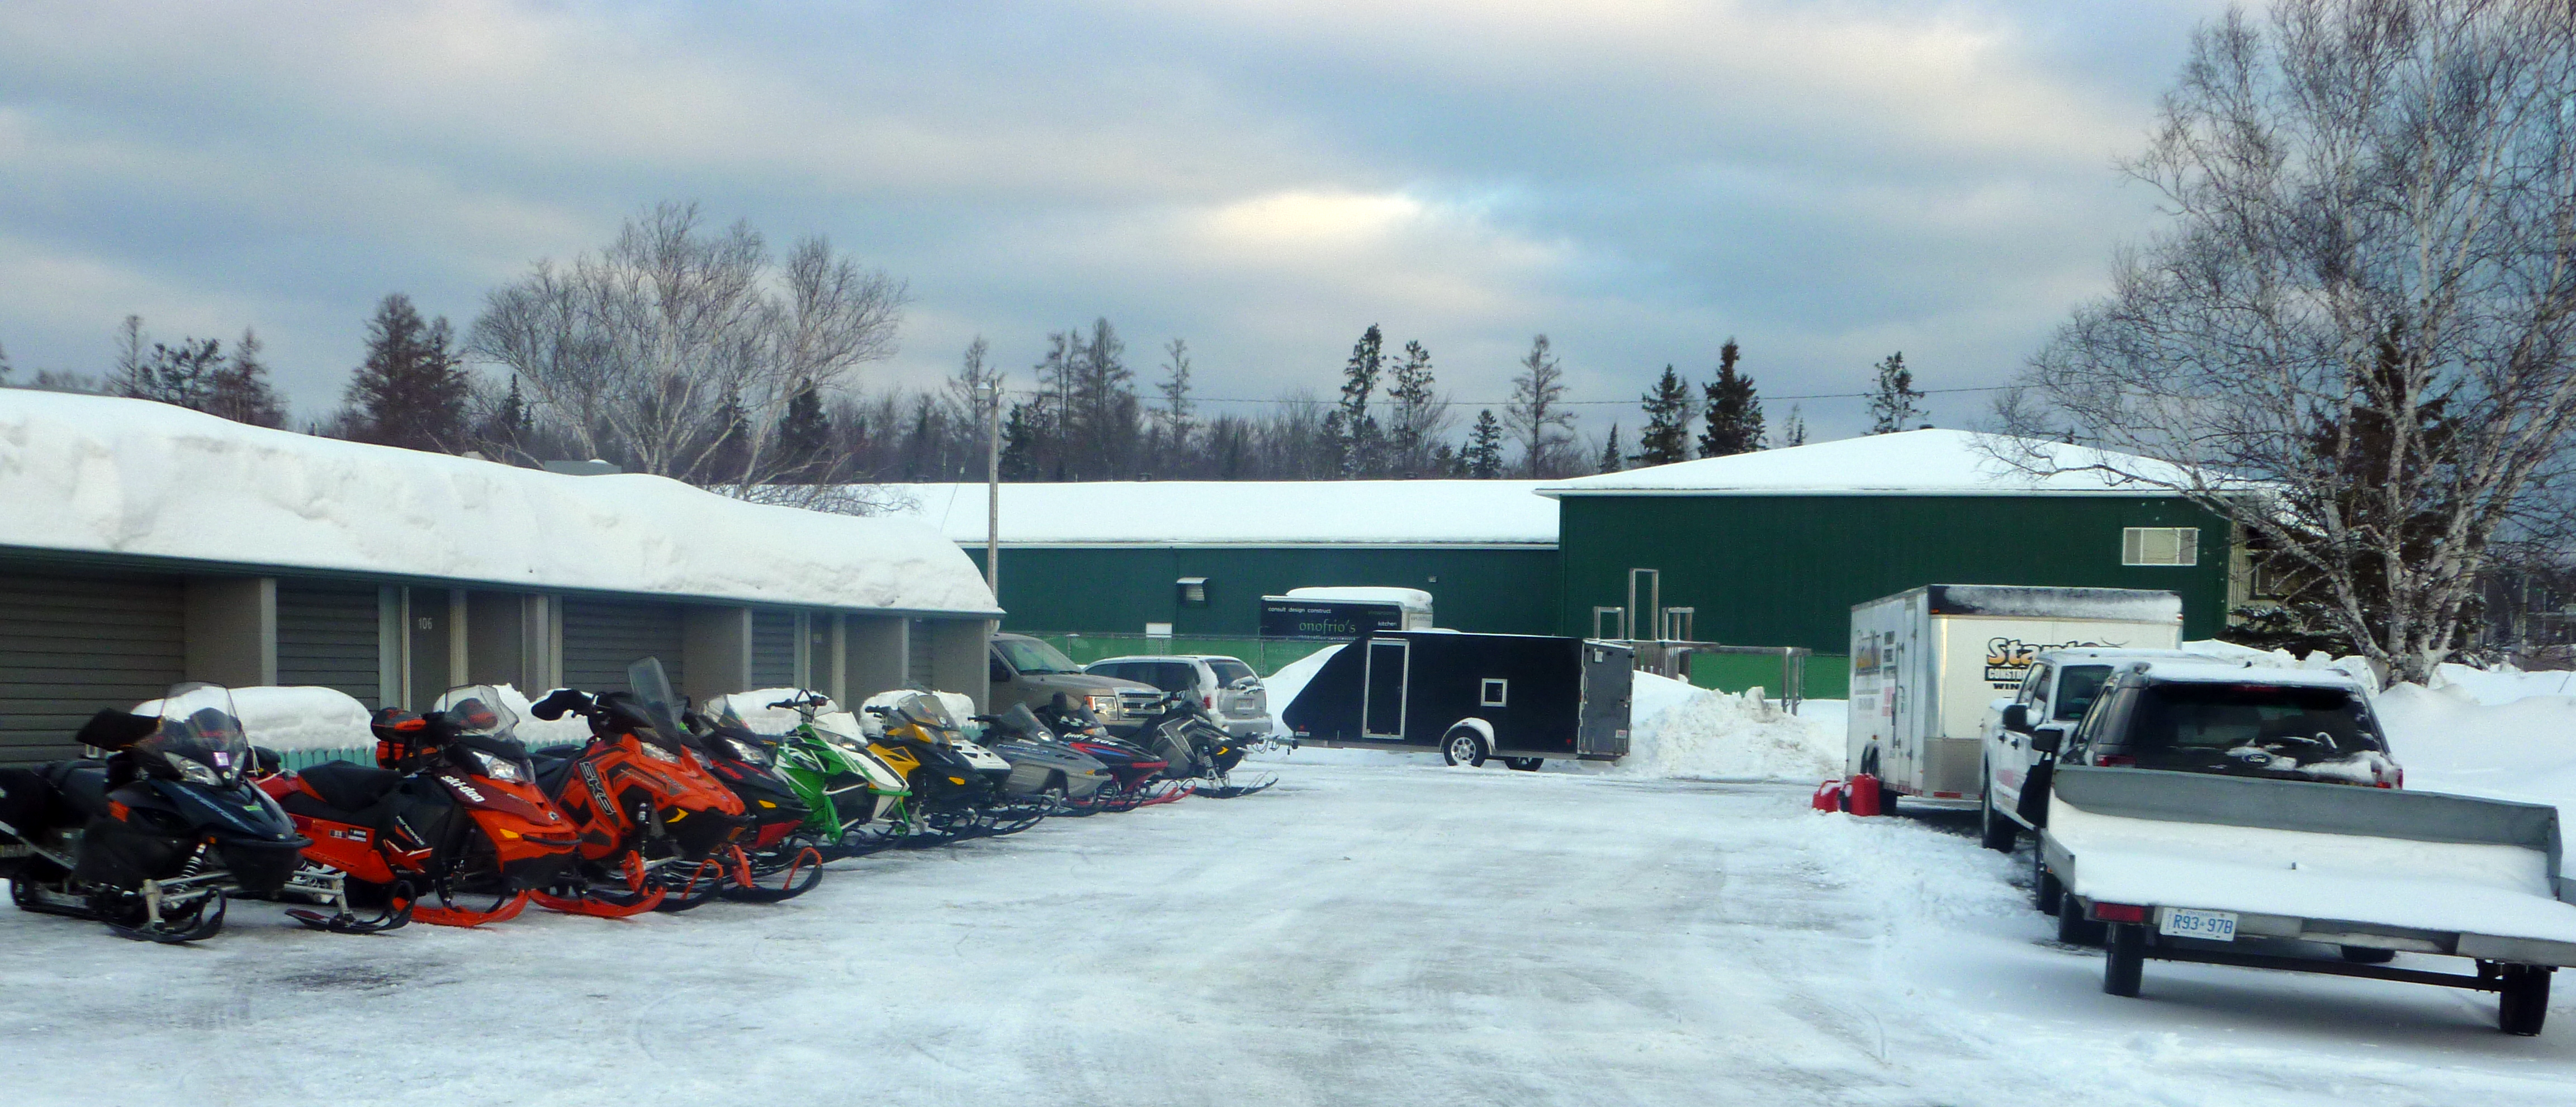 17 Snowmobiles Trailers